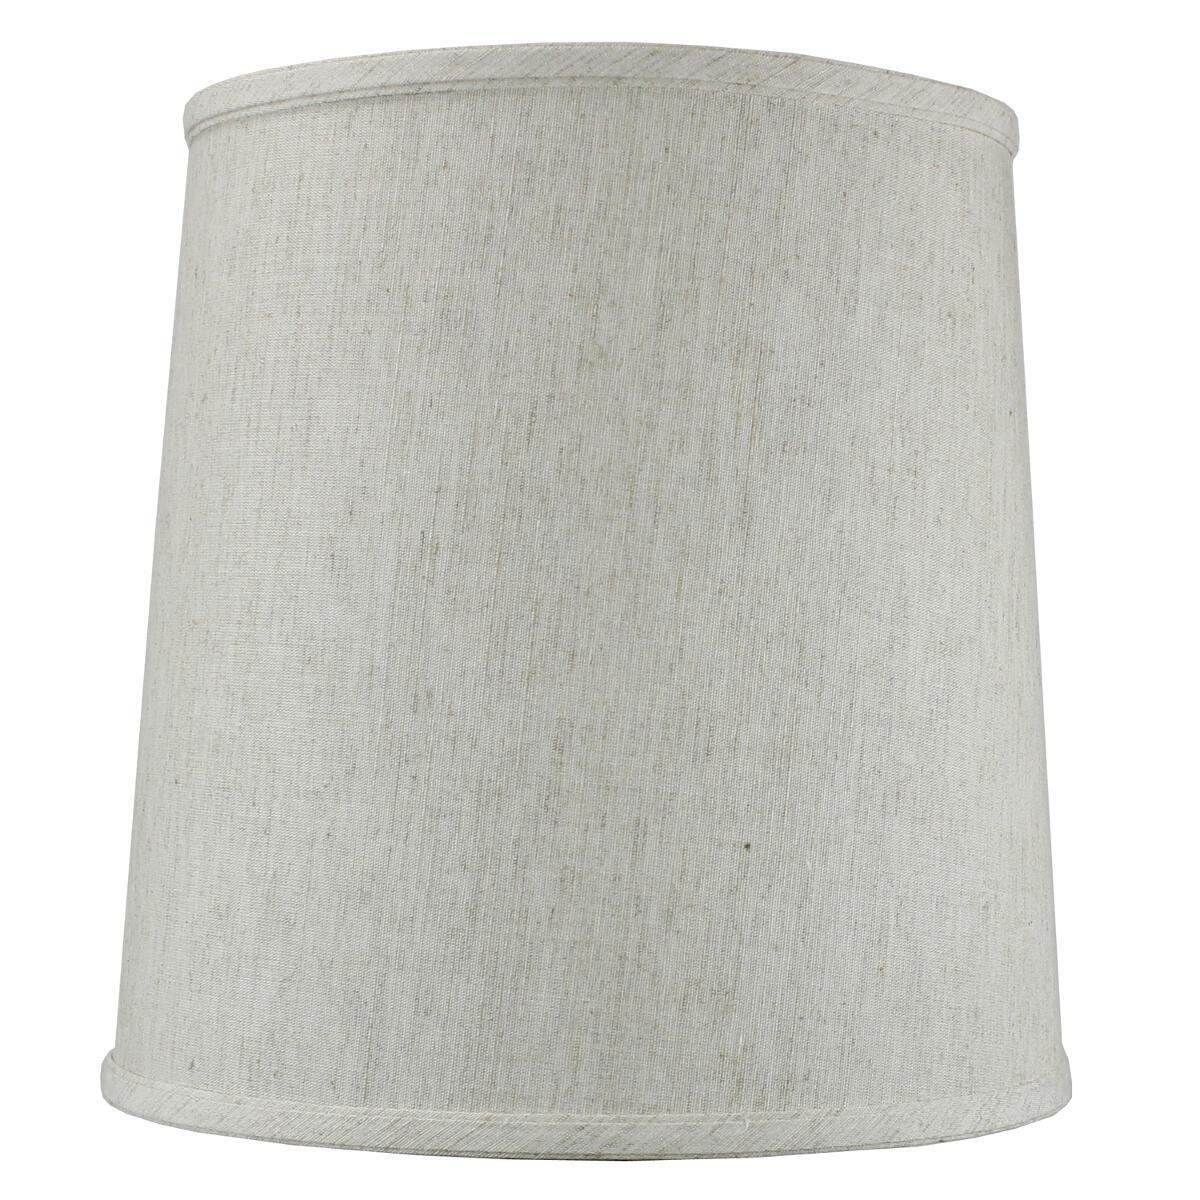 10x12x12 Textured Oatmeal linen Fabric Drum Lampshade with Brass Spider fitter By Home Concept - Perfect for table and desk lamps - Medium, Off-white